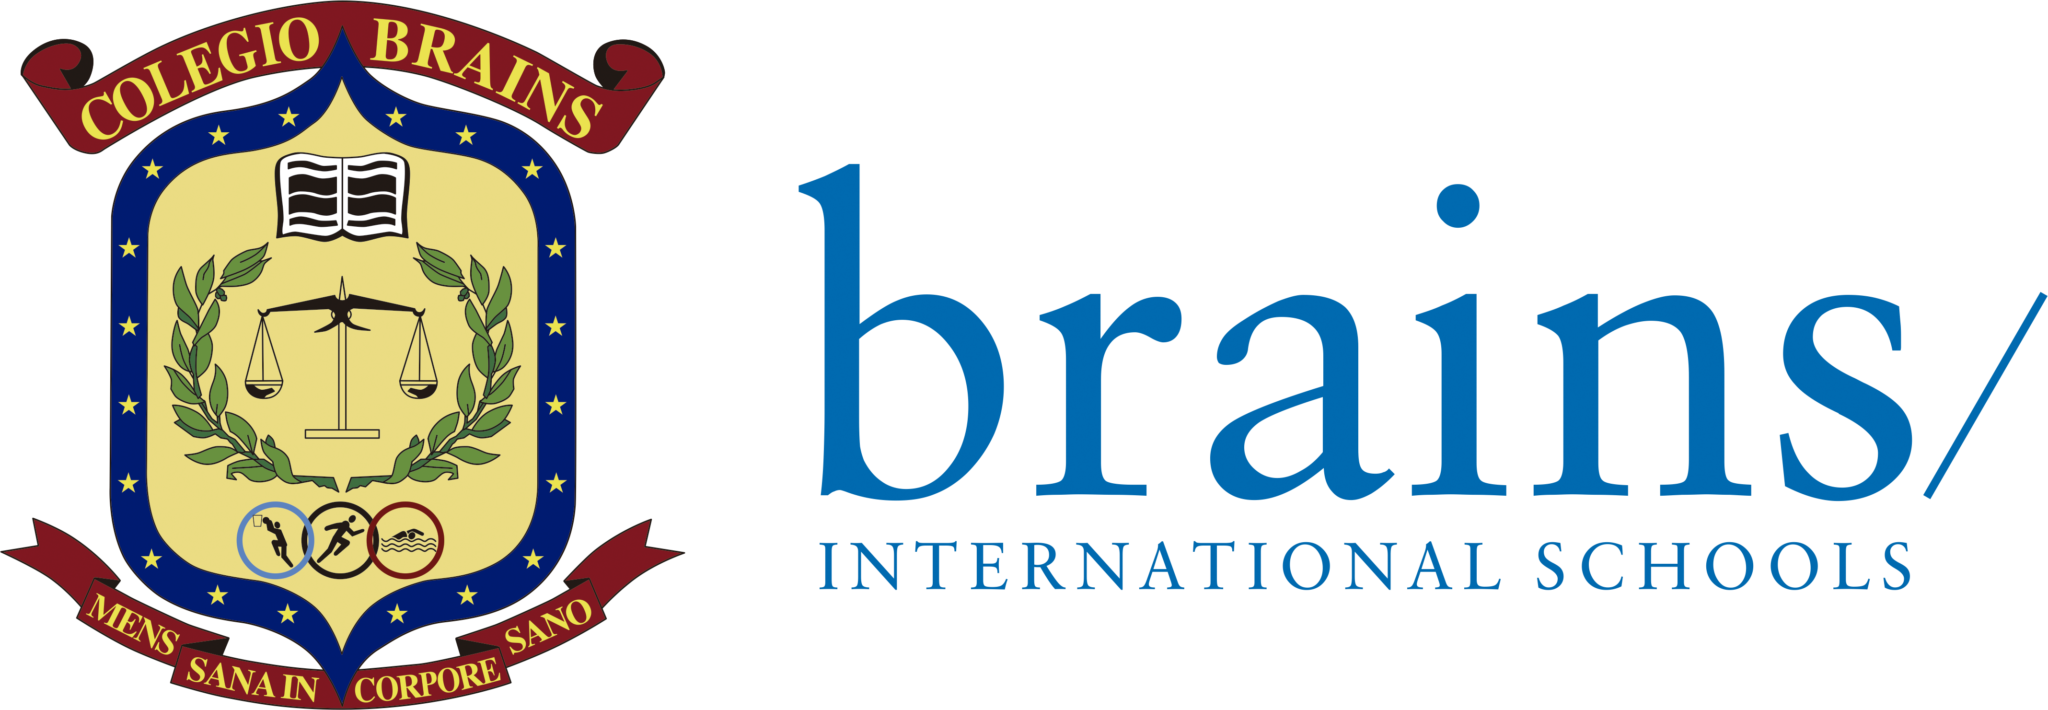 Brains International Schools